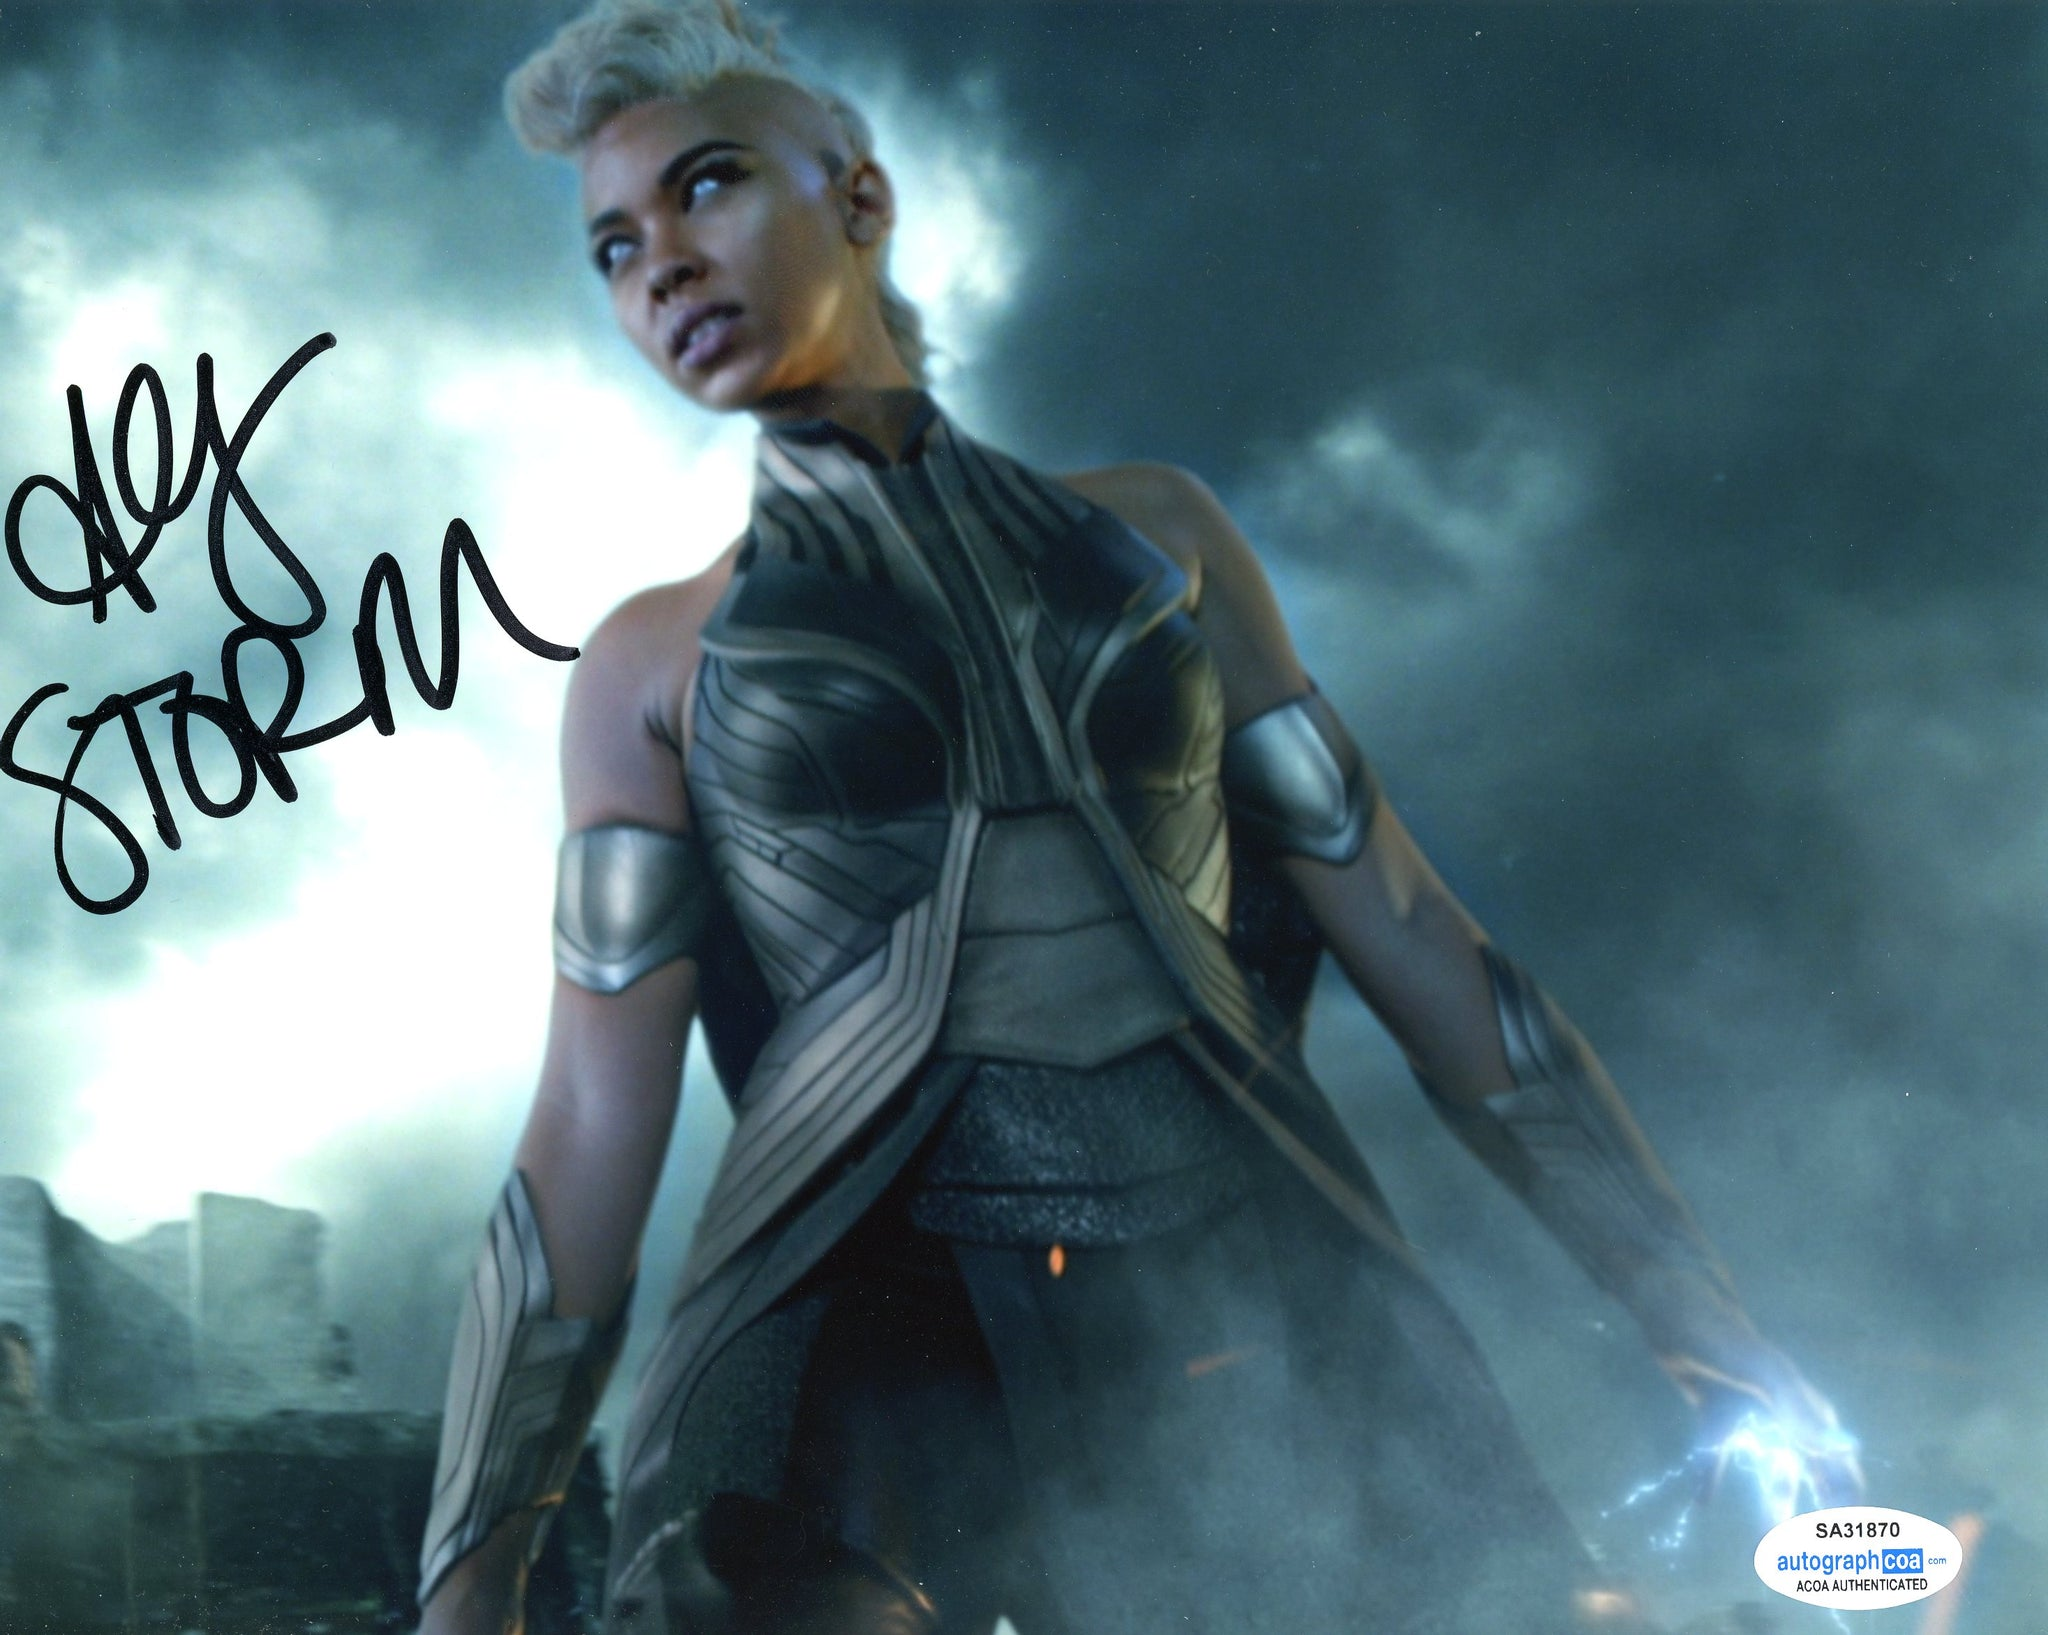 Alexandra Shipp X-Men The Storm Signed Autograph 8x10 Photo ACoA #3